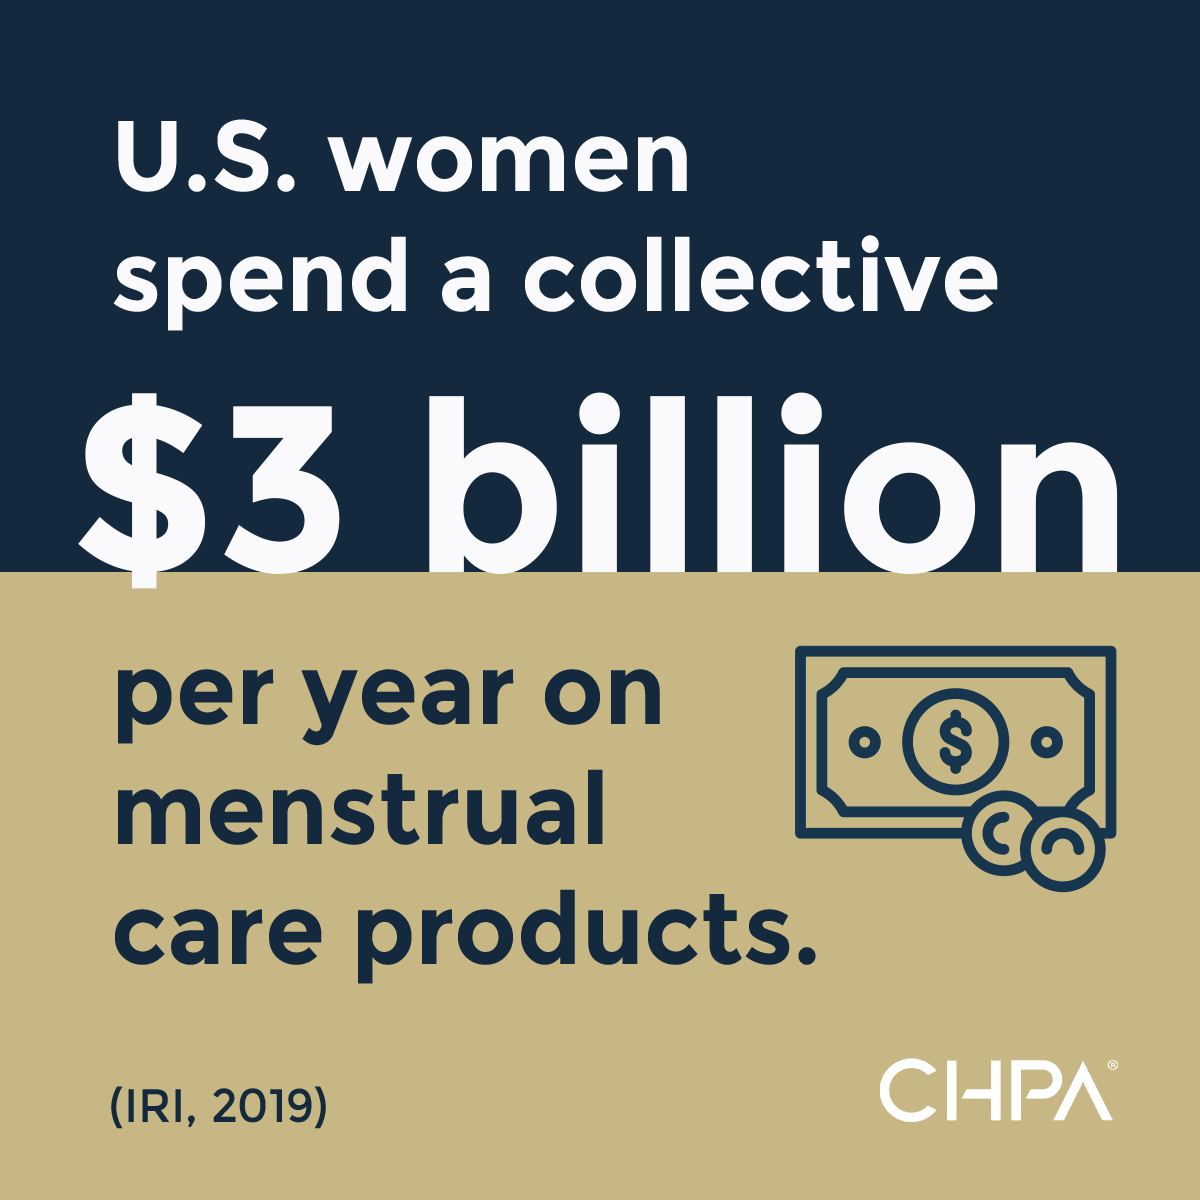 Blue and tan infographic displaying that U.S. women spend $3 billion annually on menstrual care products